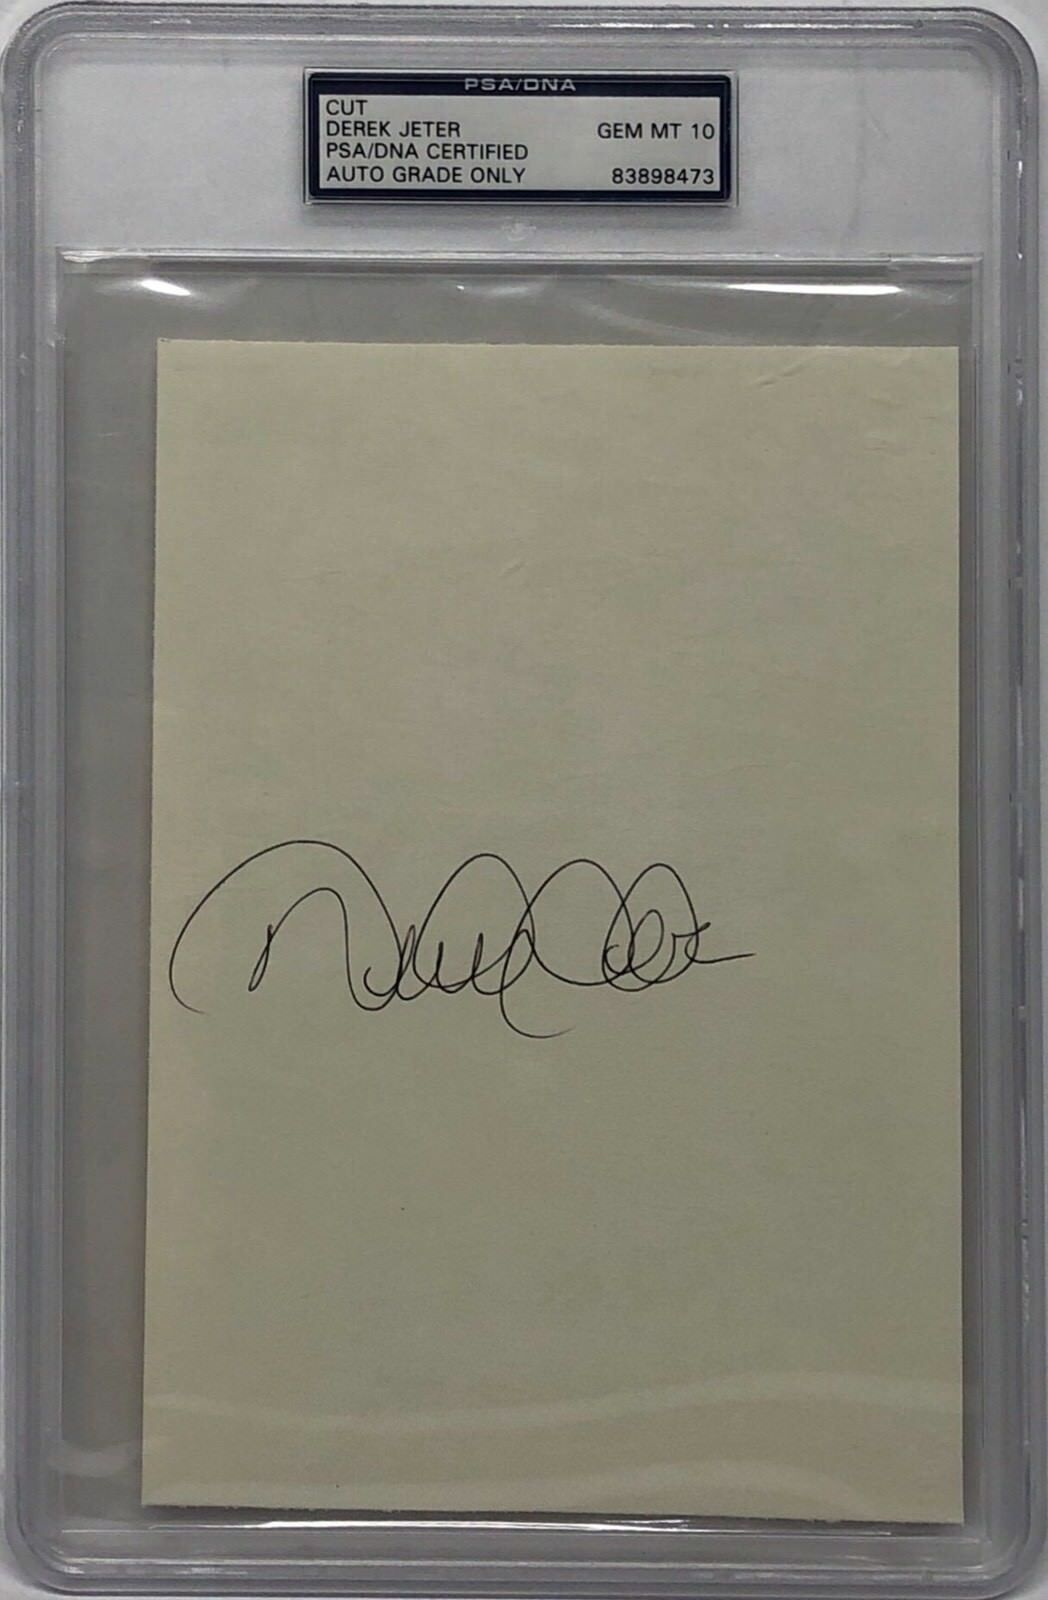 Derek Jeter Signed 5x8 Cut *New York Yankees Auto Grade GEM MT 10 PSA